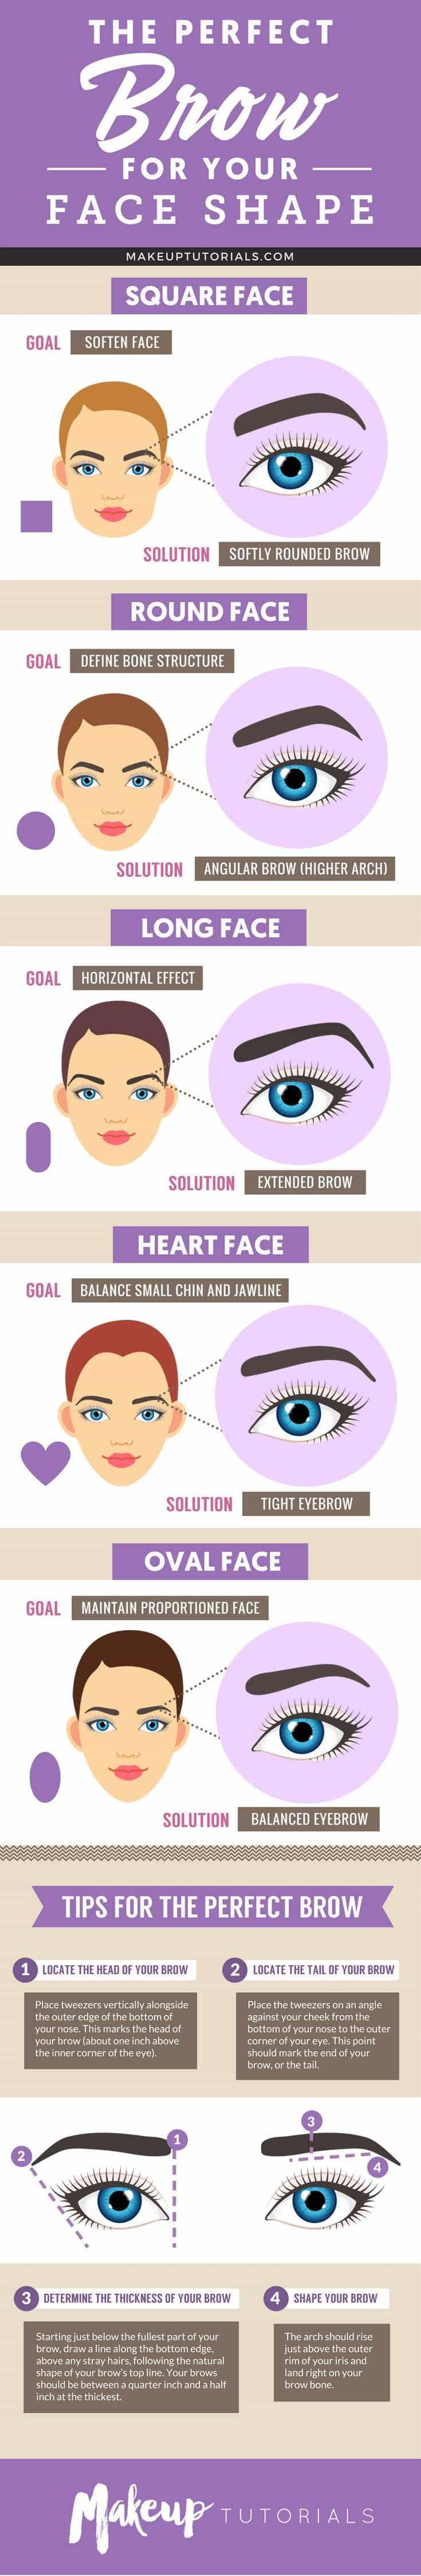 Do you want an eyebrow tutorial that will teach you how to create the perfect eyebrows for your face shape? We got the best guide right here!